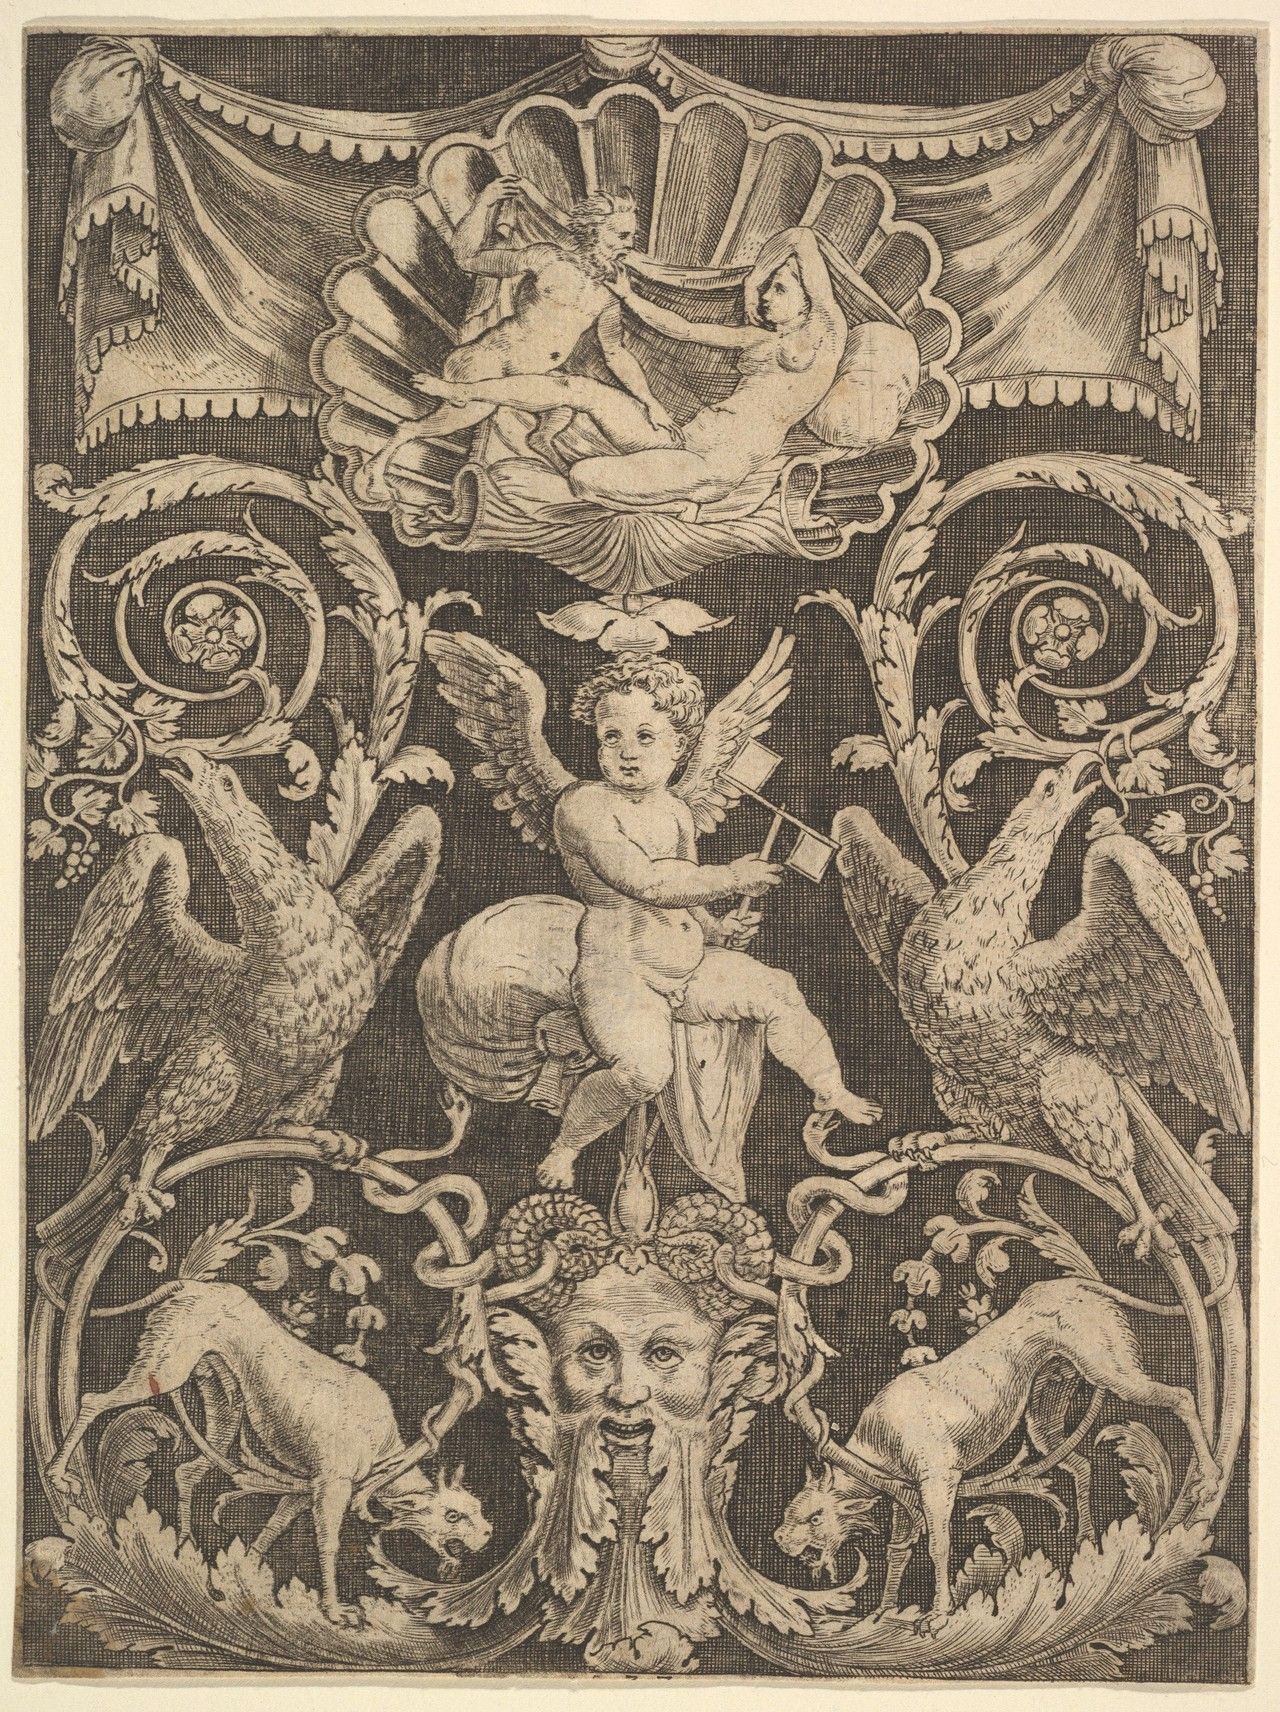 European Sculpture And Decorative Arts Met Drawings Prints A Panel Of Ornament With A Art Medieval Art European Sculpture